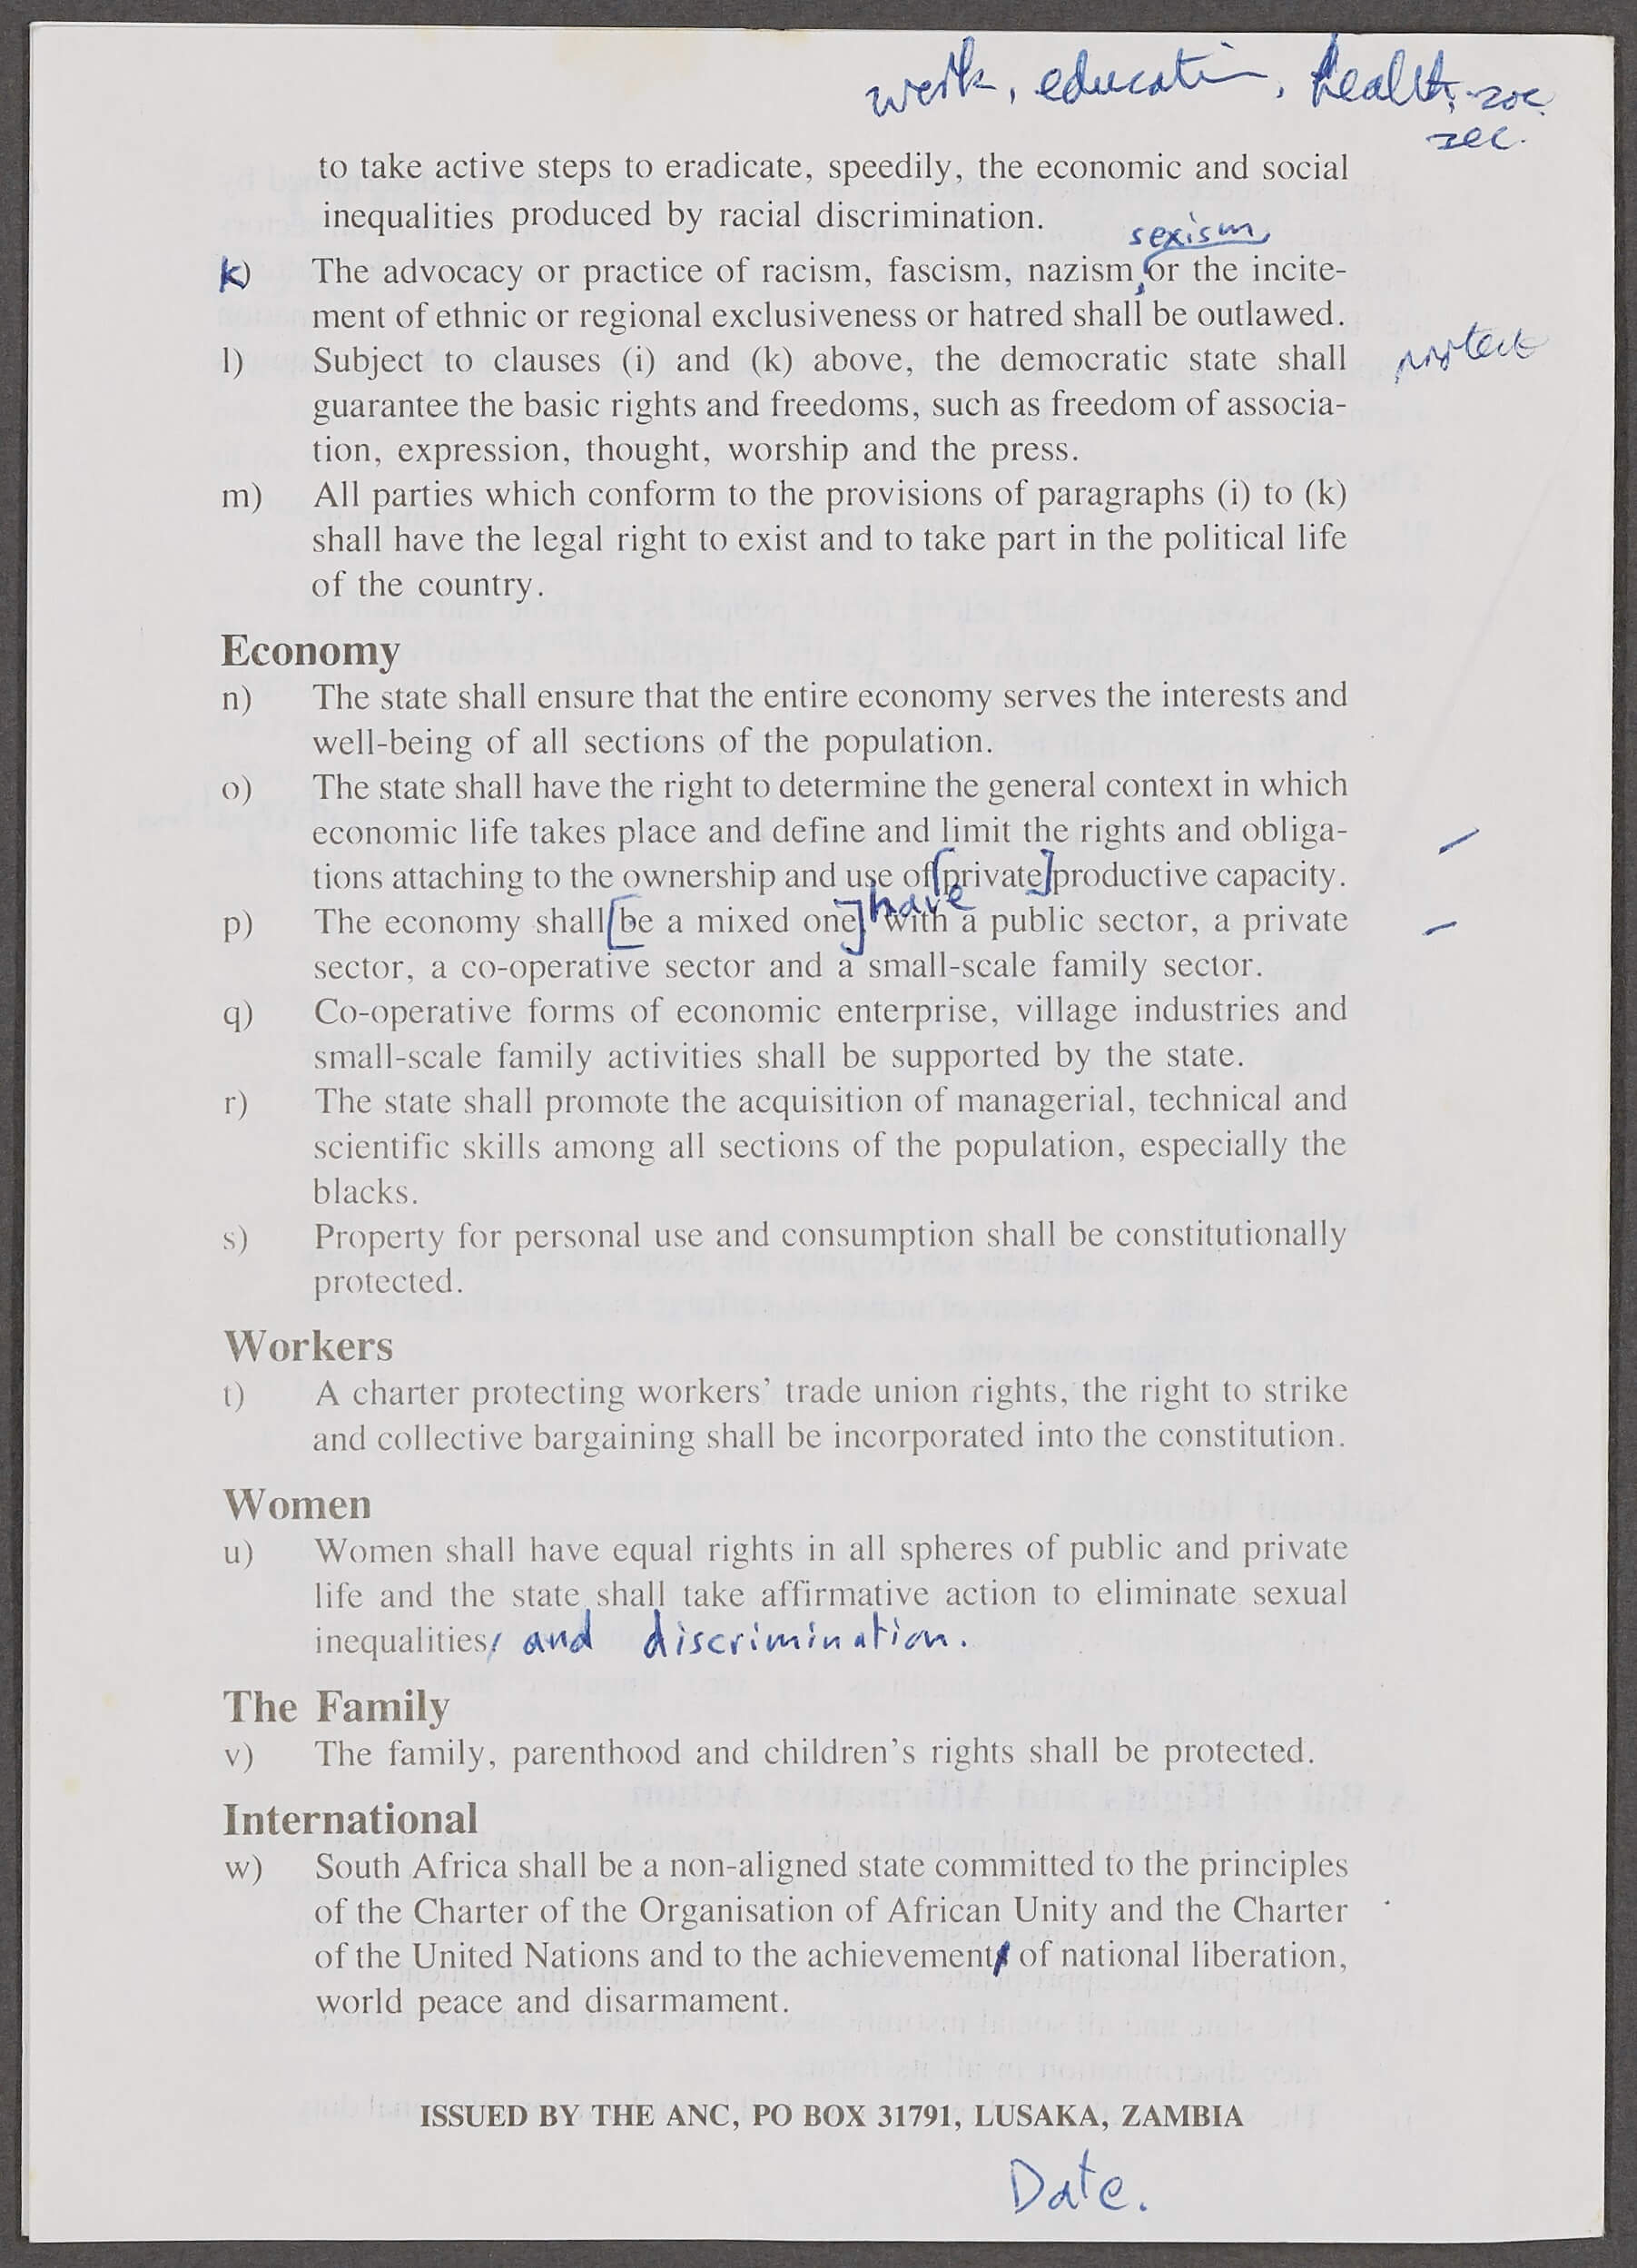 009_constitutional guidelines pamphlet page 3 (1)